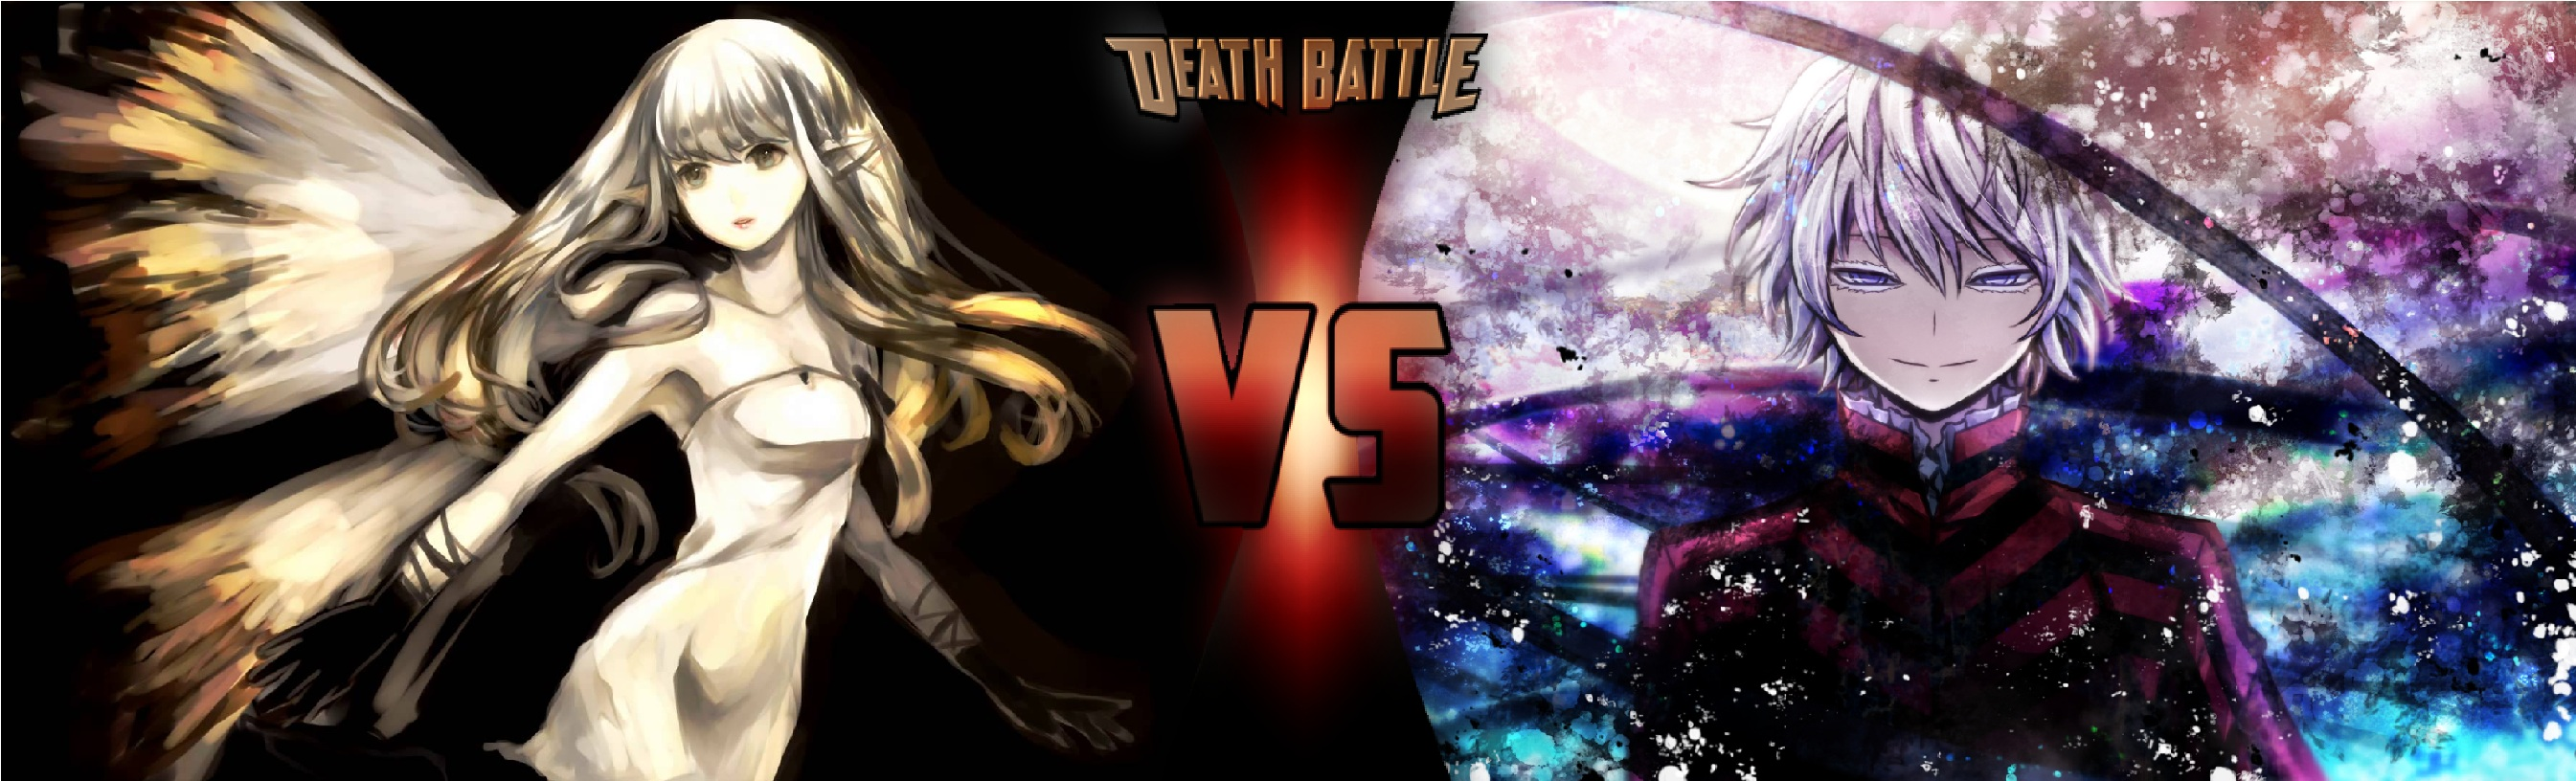 Remembering Obscure Matches by ShadowFrost1 on DeviantArt